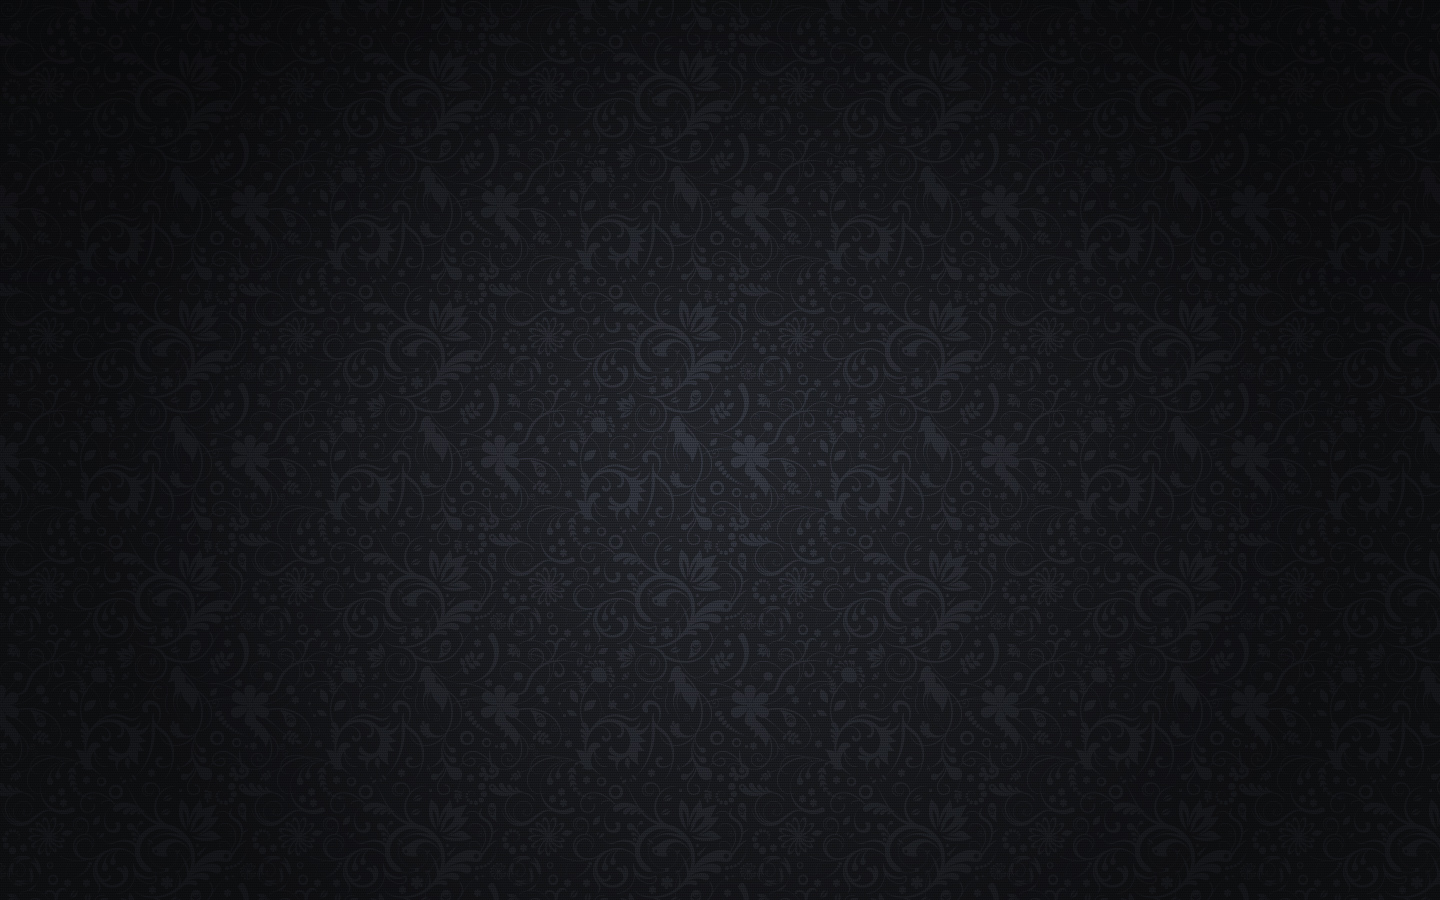 Dark Abstract Desktop Backgrounds Images amp Pictures   Becuo 1440x900